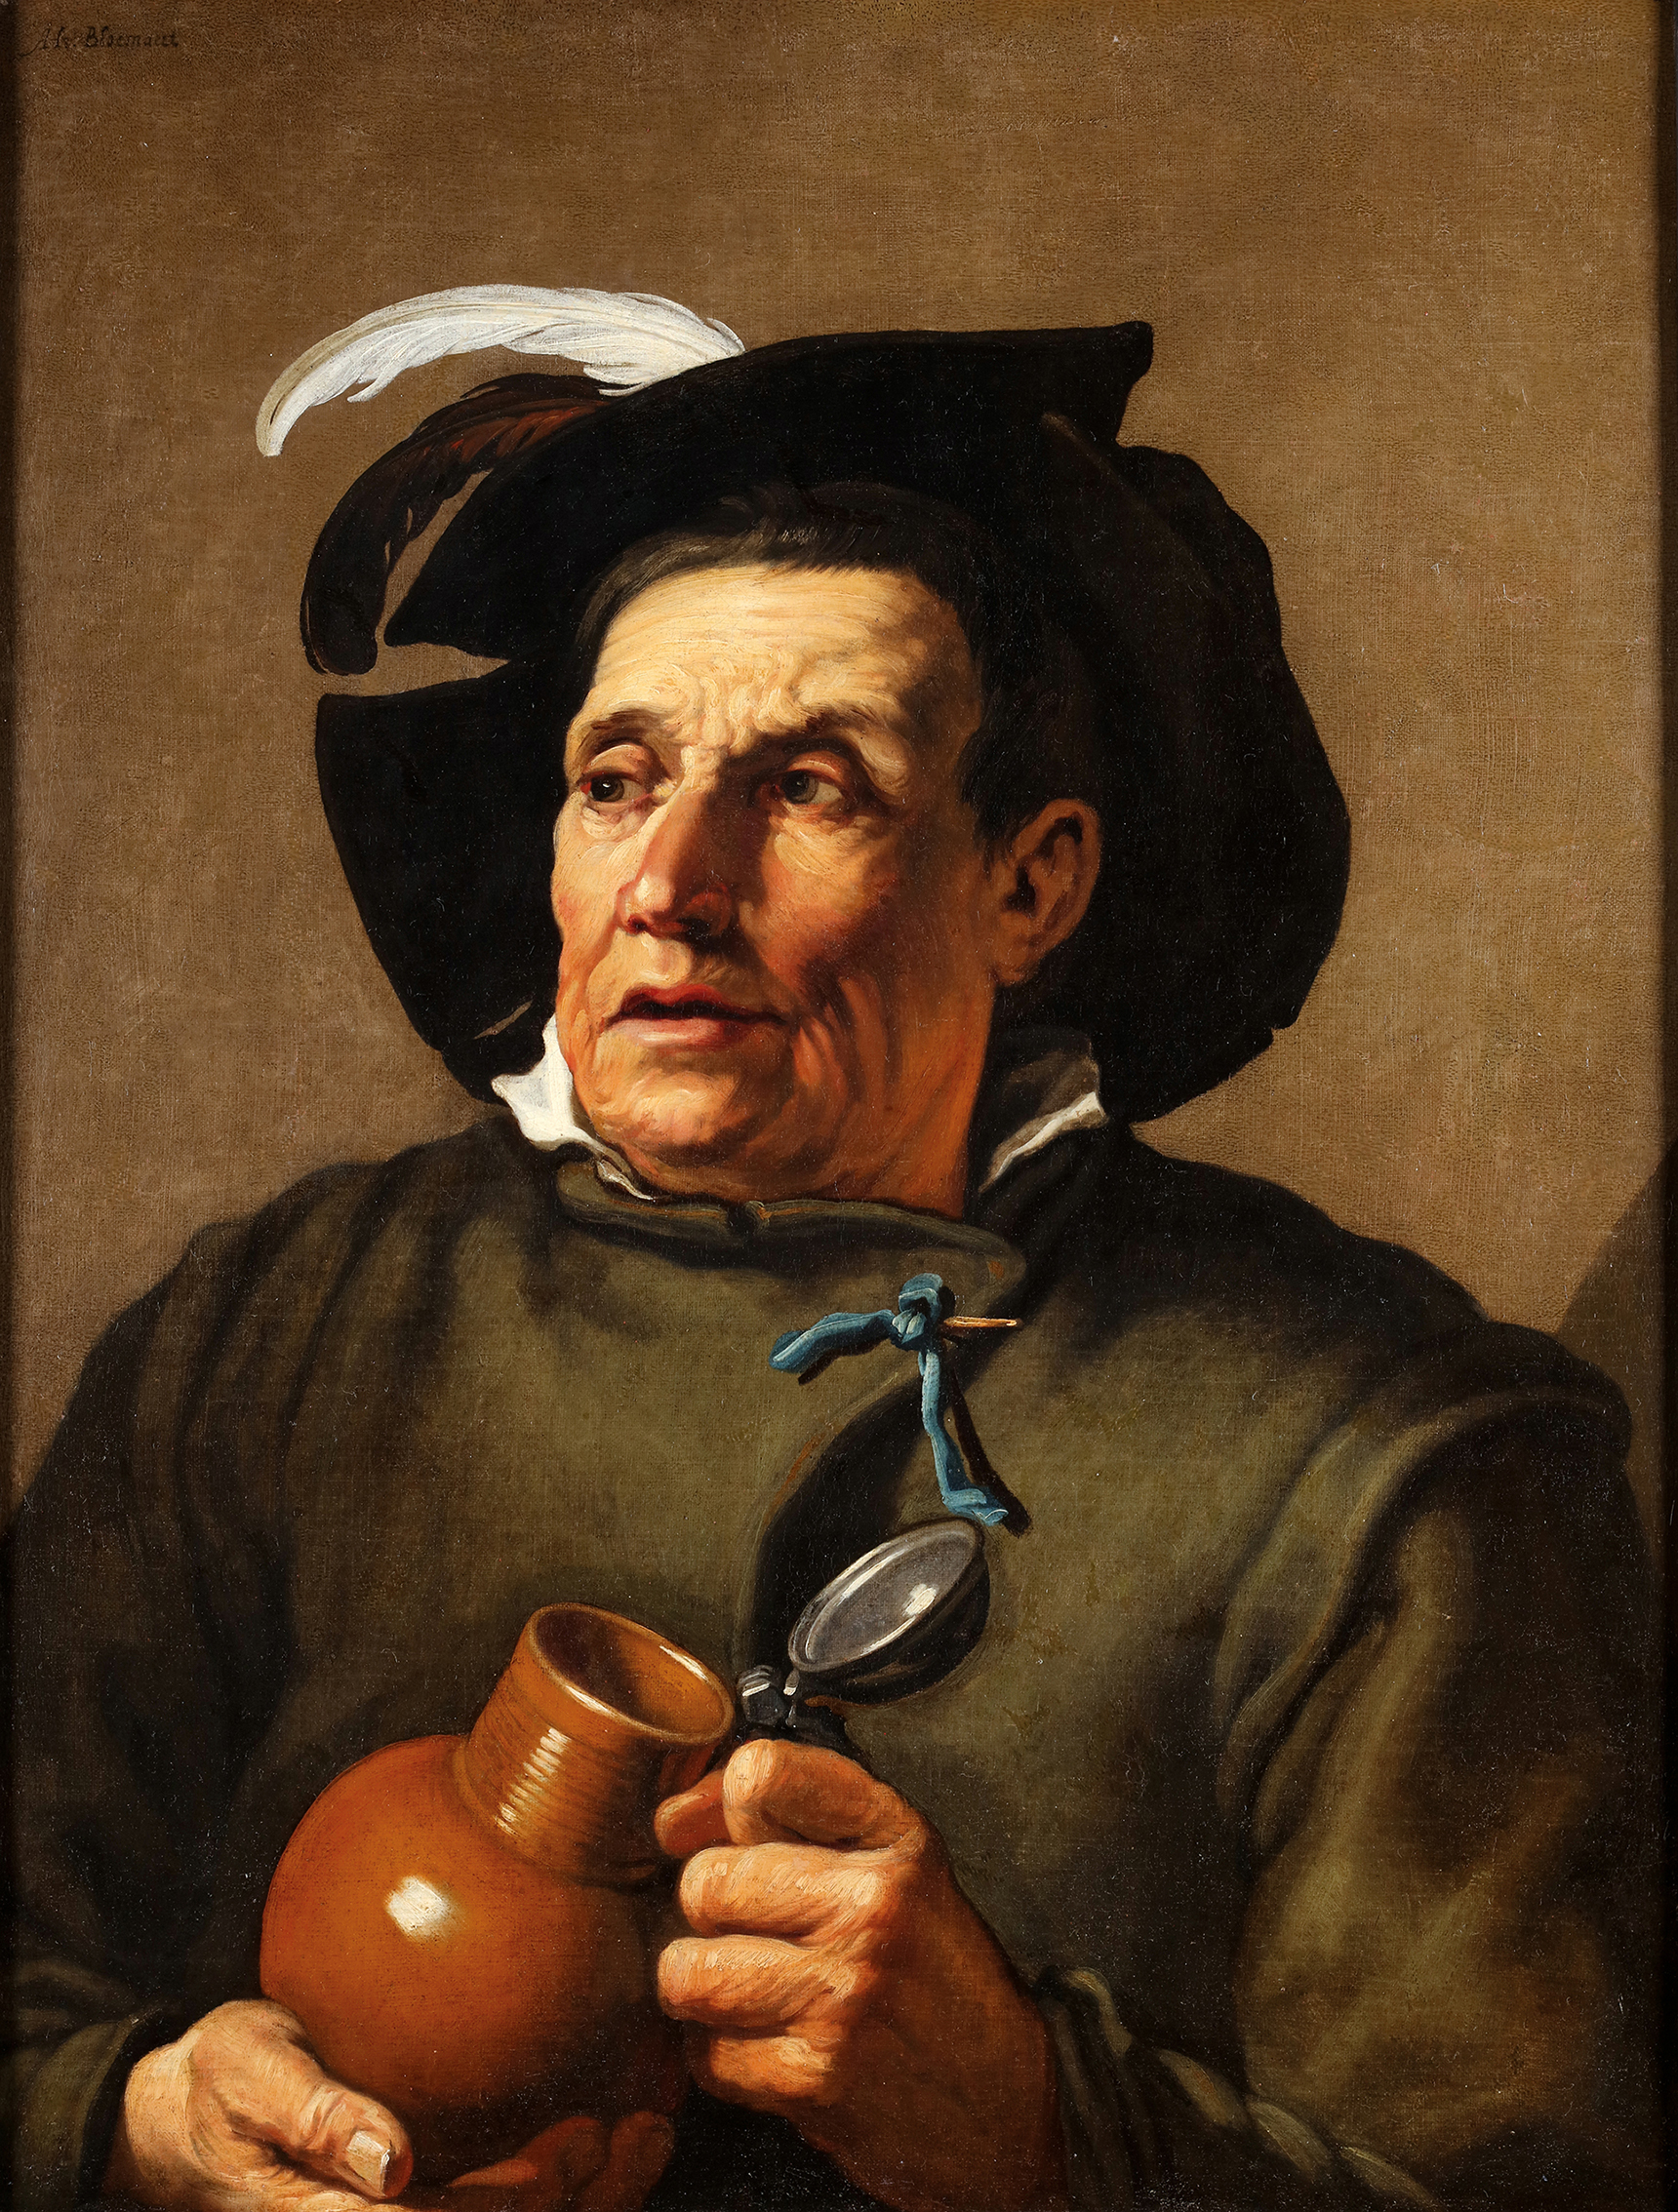 Portrait of a man holding a jug